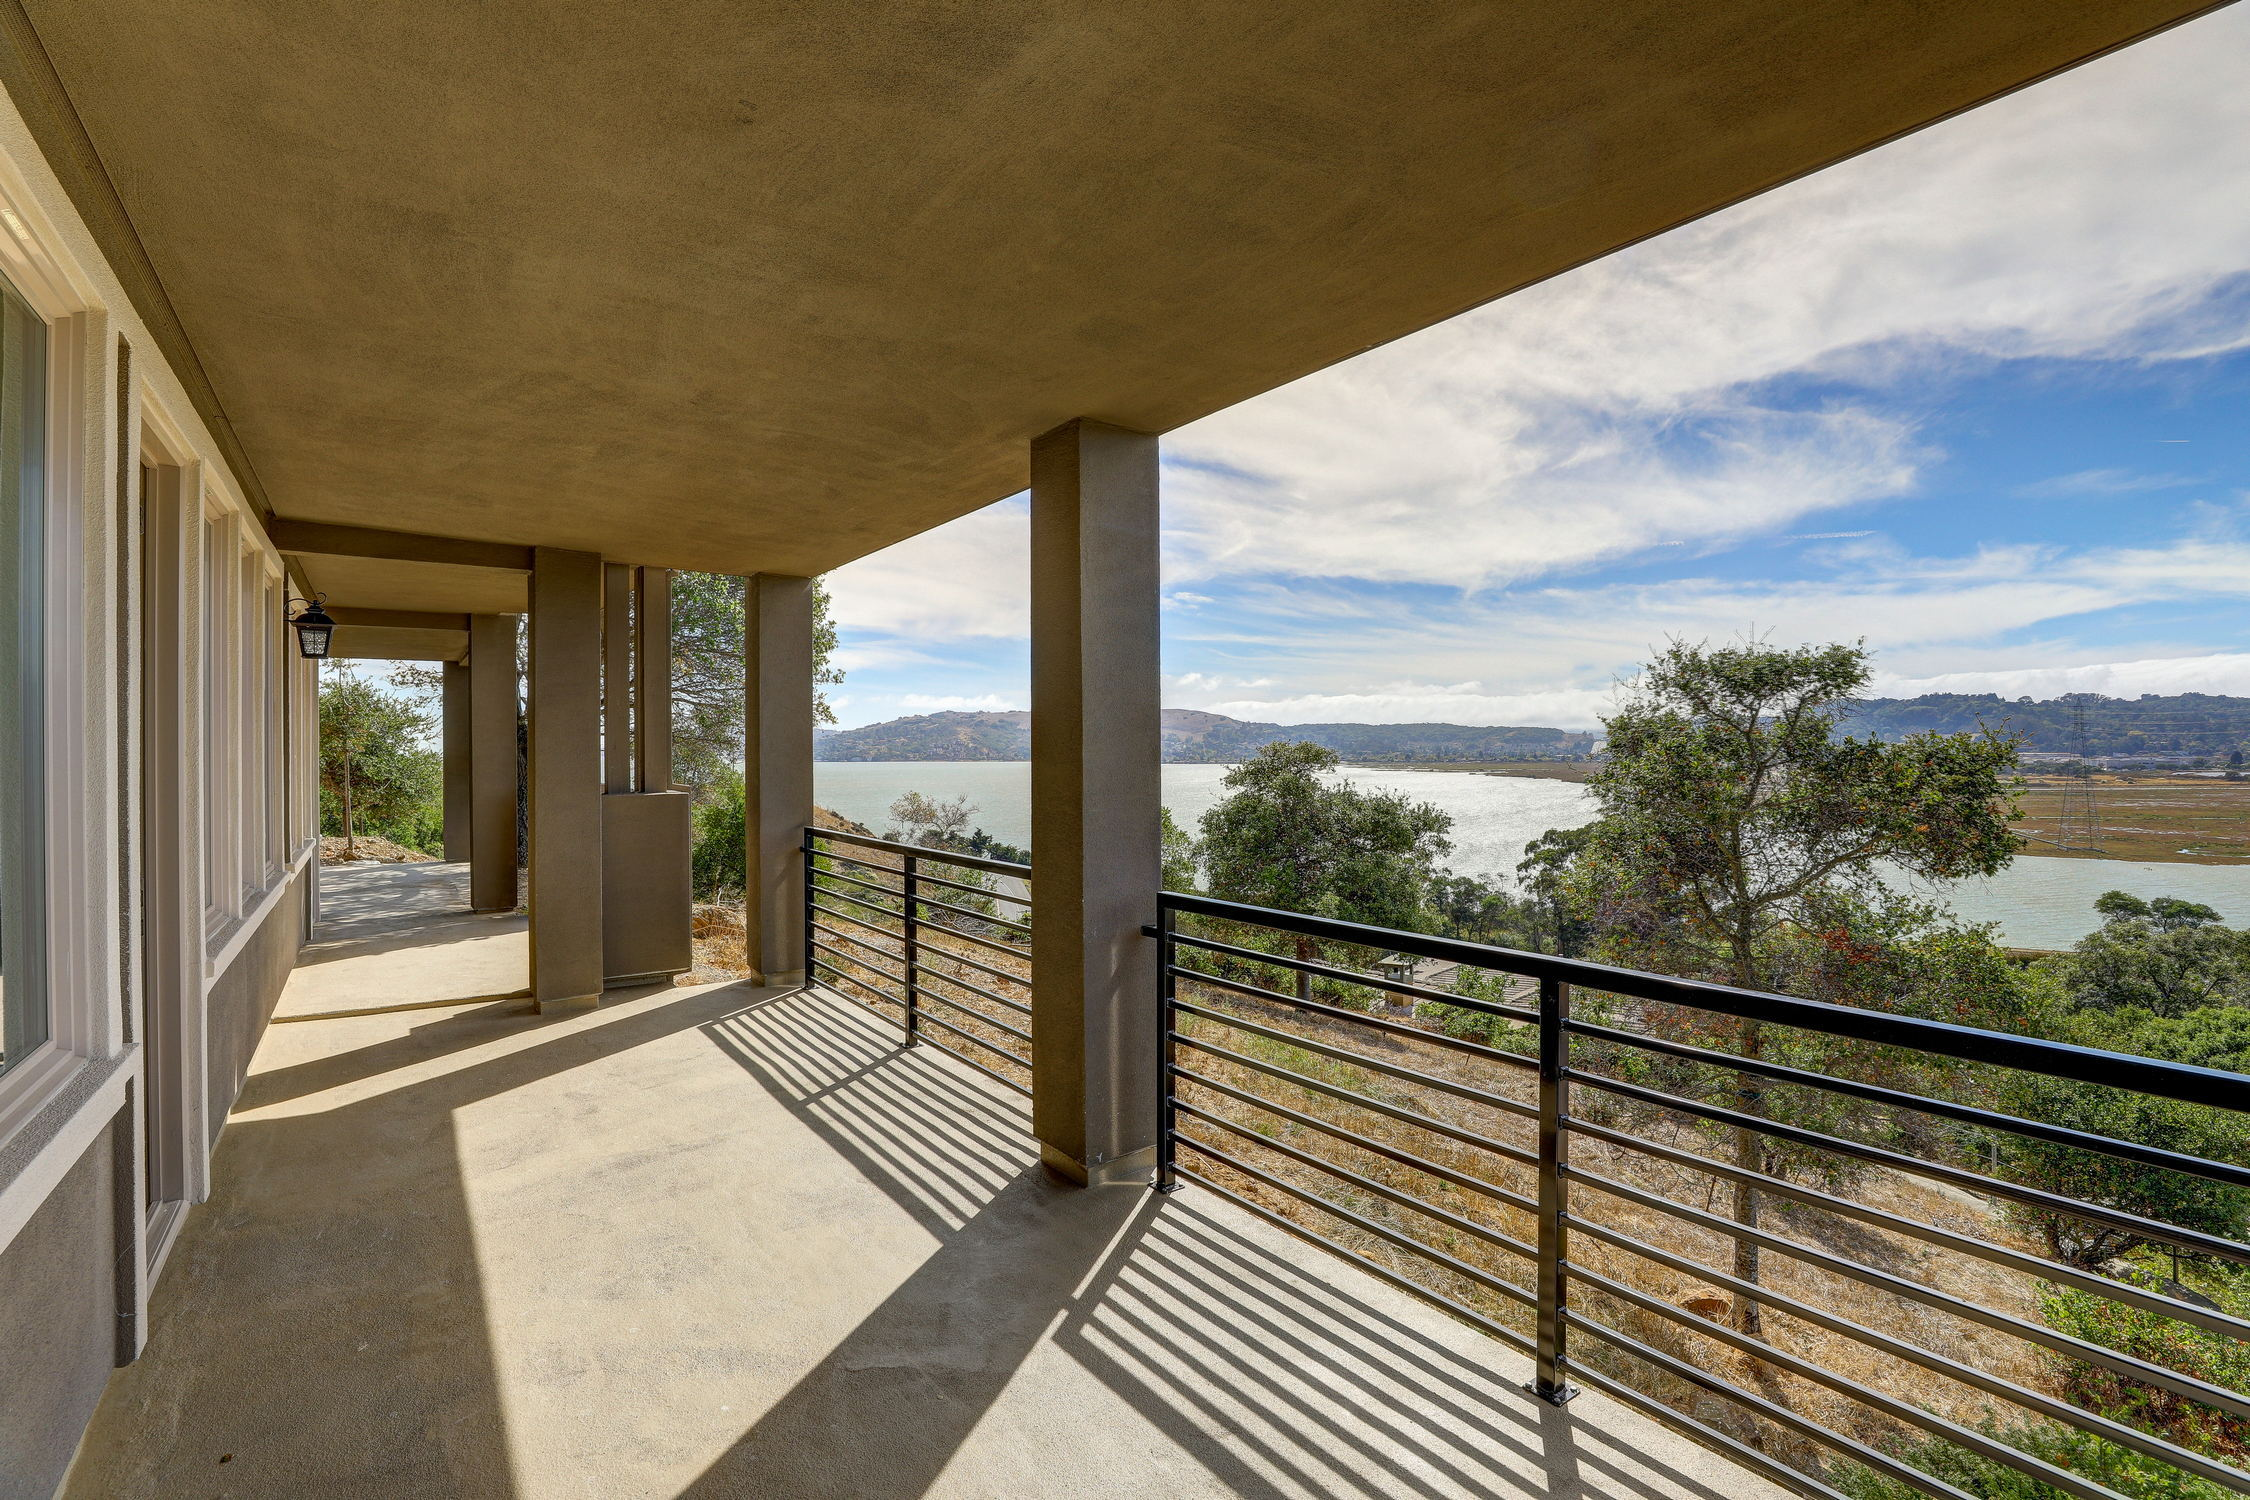 31 Drakes Cove, Larkspur Homes for Sale62 MLS - Own Marin with Compass - Mill Valley Realtor.jpg